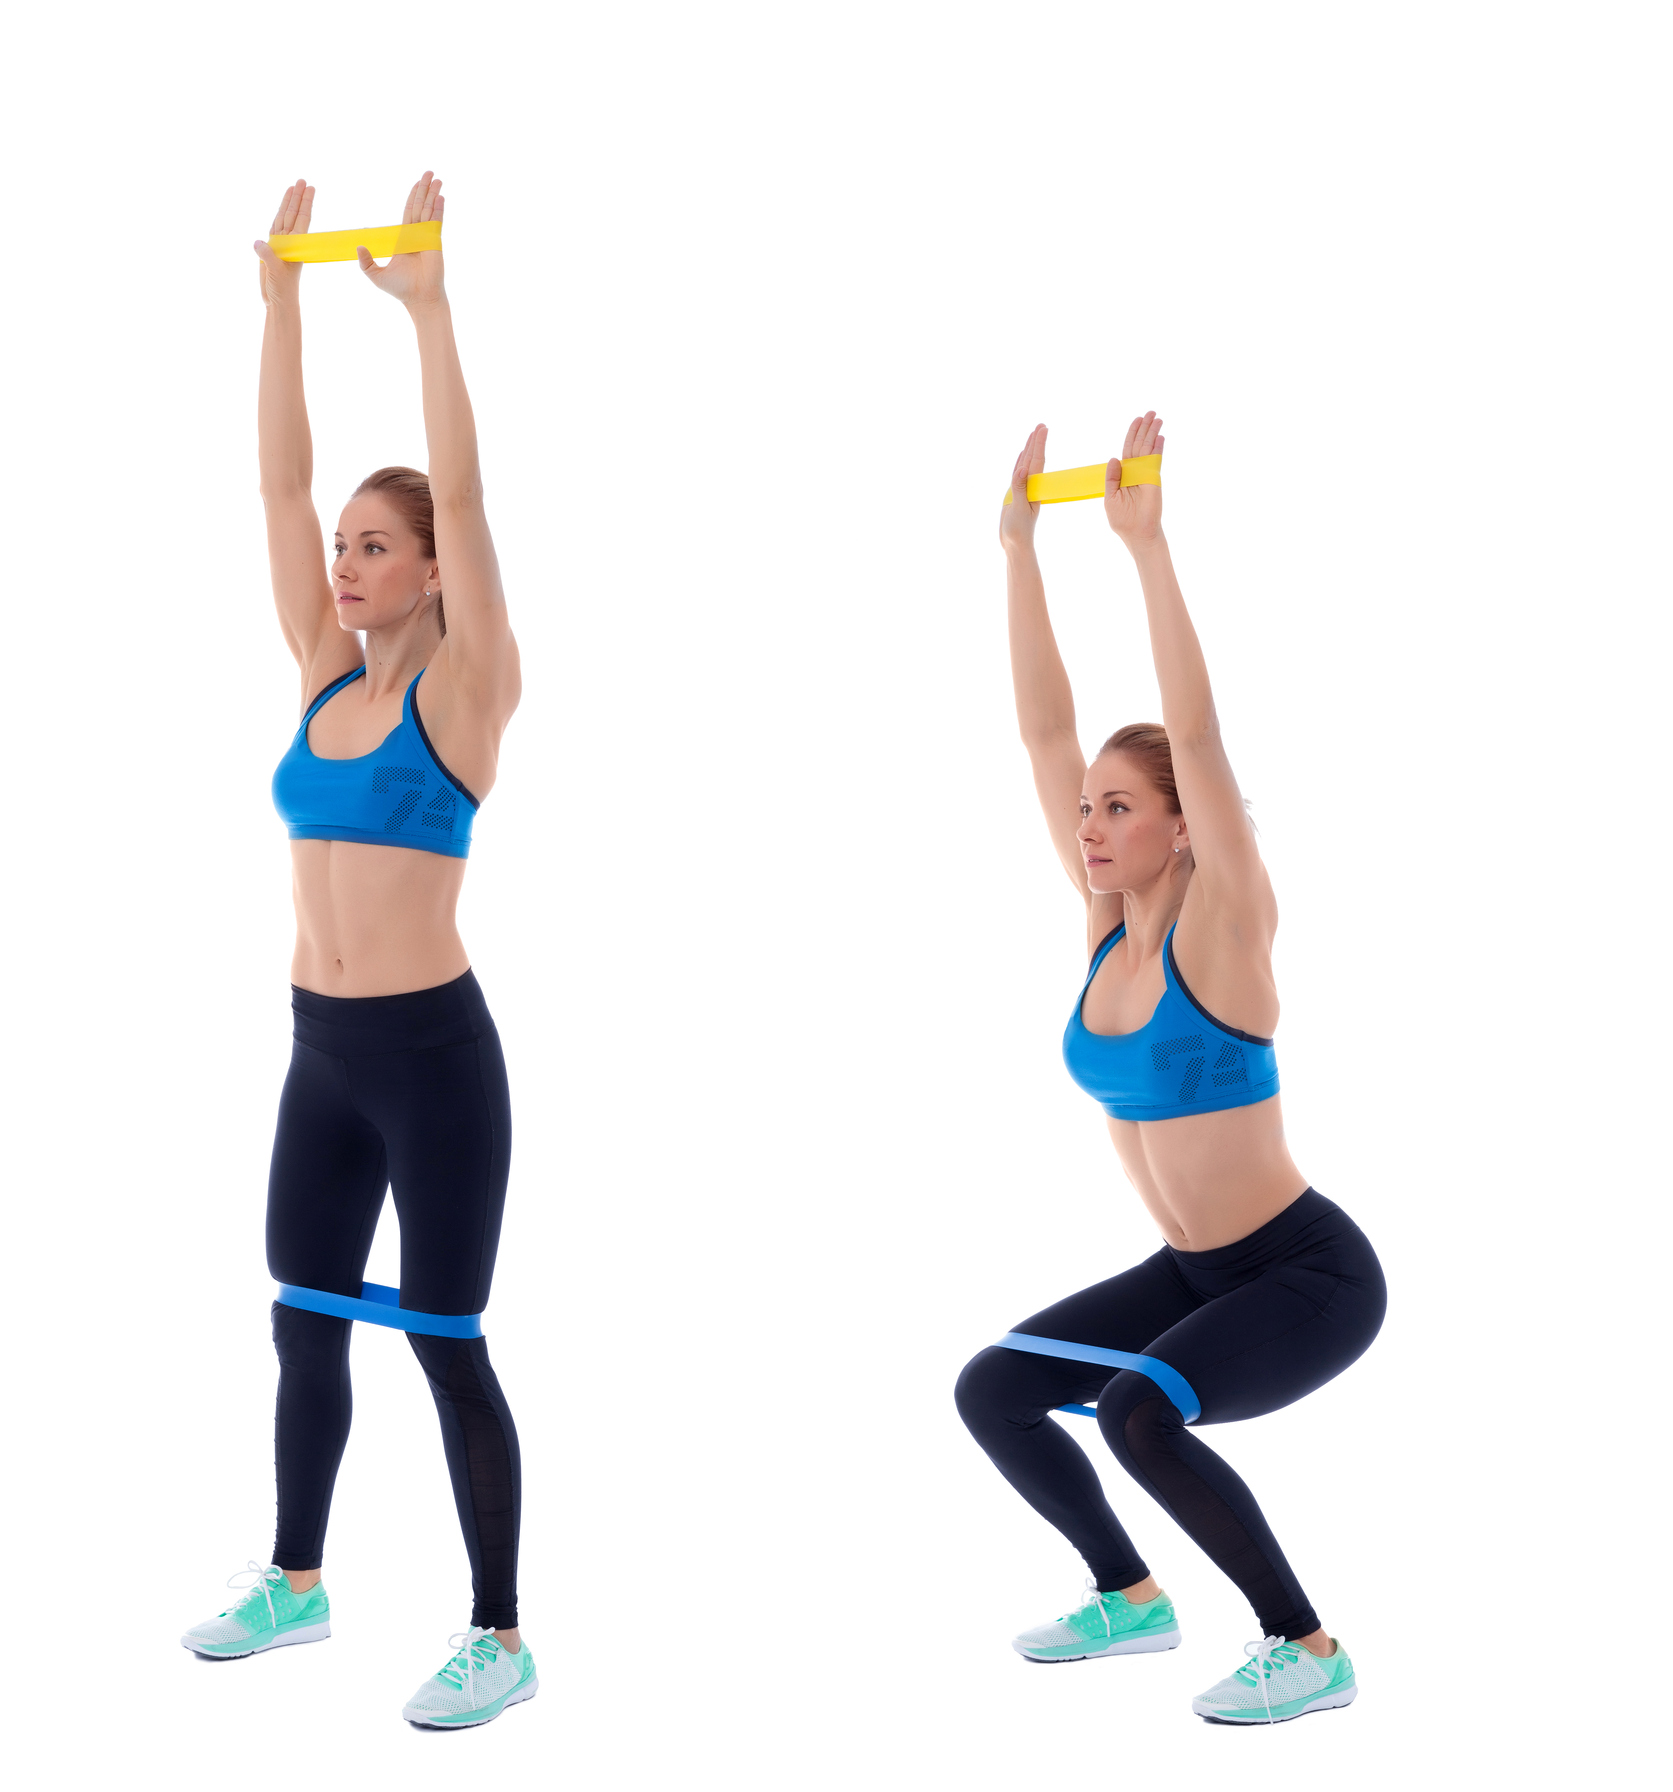 Workout Bands Youtube: 3 Exercises You Can Do Now To Help Build Strength In Your